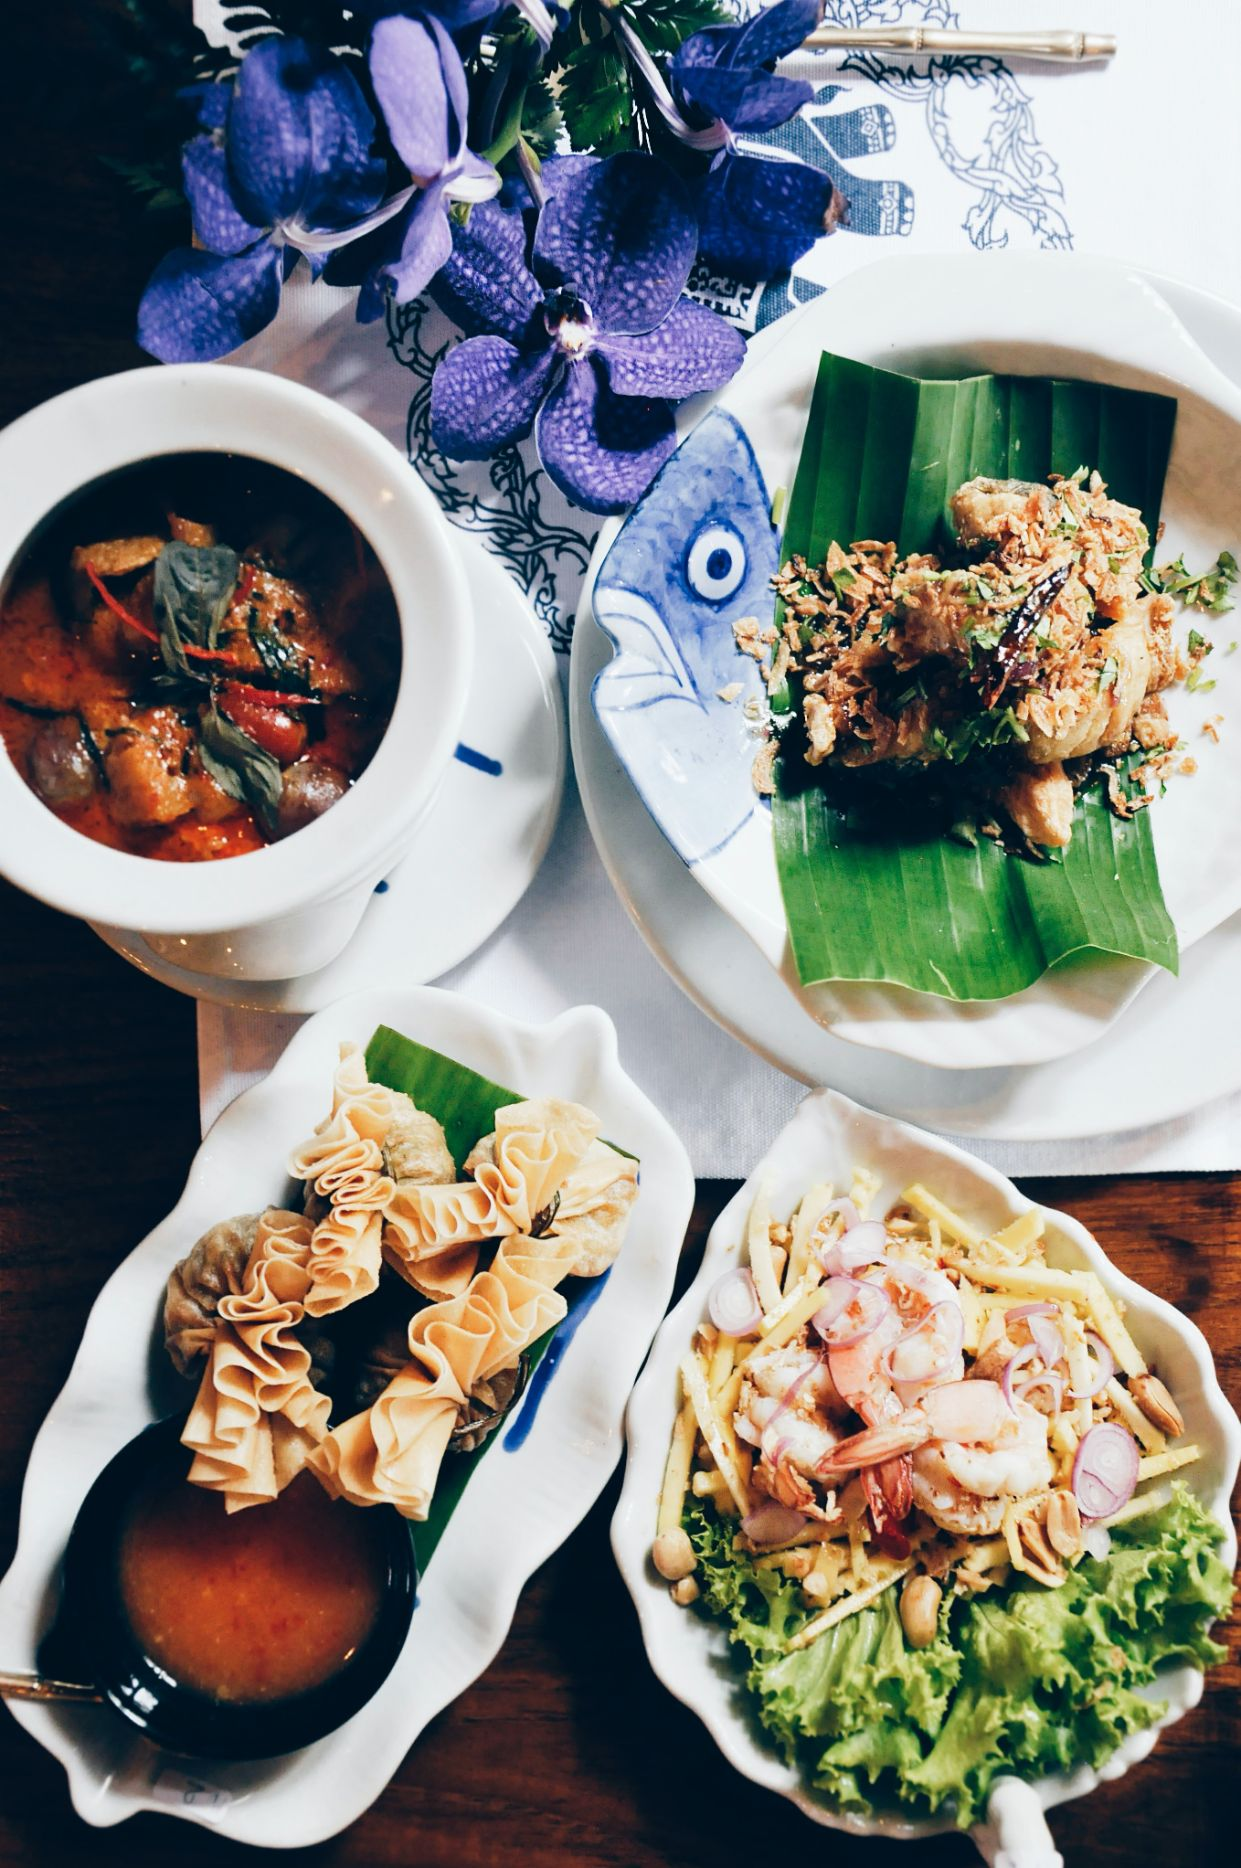 Thai food spread on the table with dishes of dumplings, curry, and more